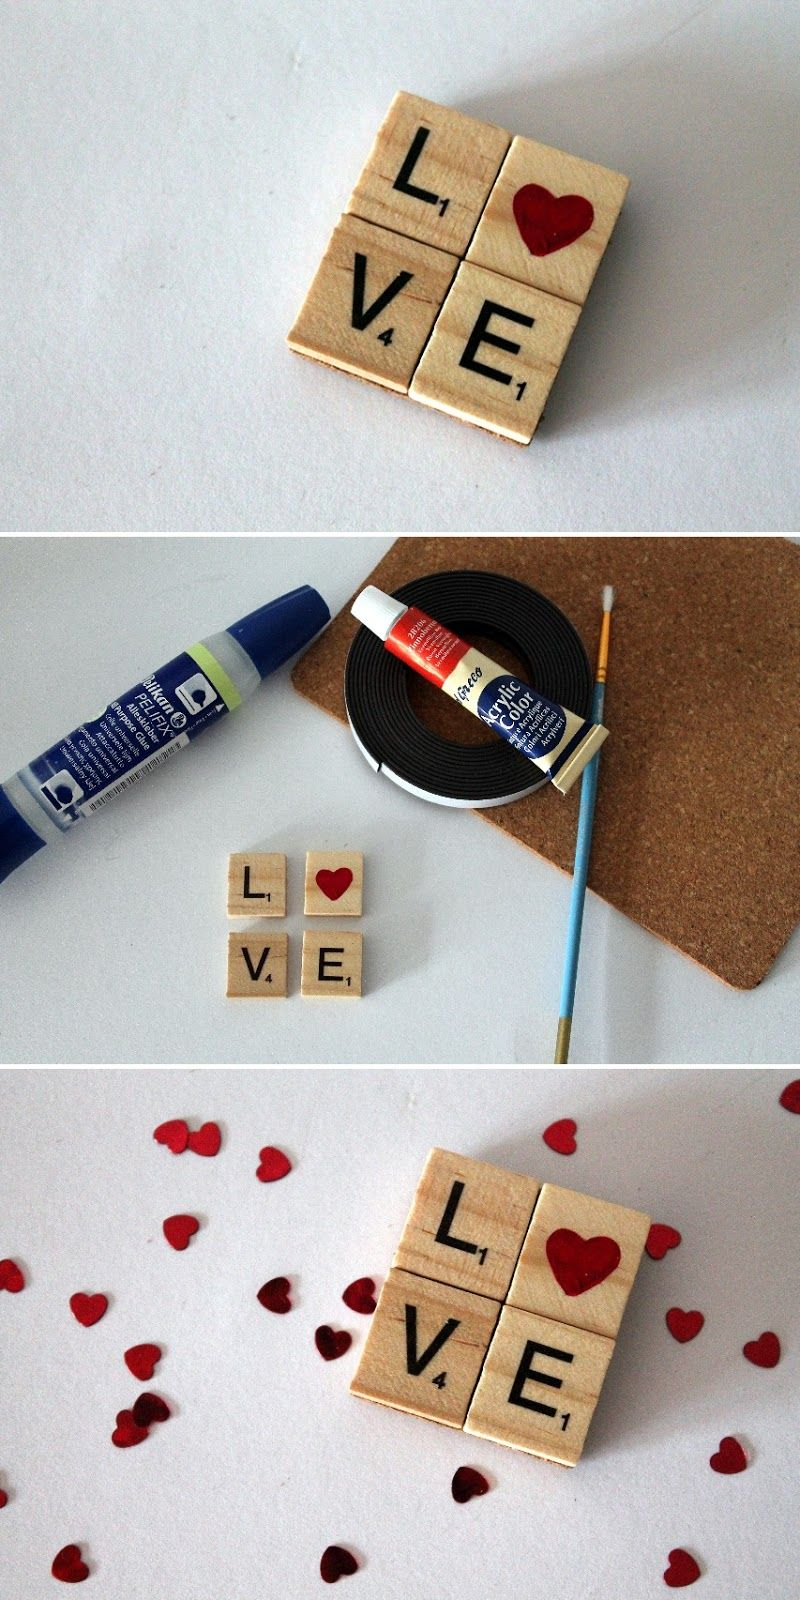 diy love magnet herz aus scrabble buchstaben diycarinchen geschenke geschenkideen. Black Bedroom Furniture Sets. Home Design Ideas